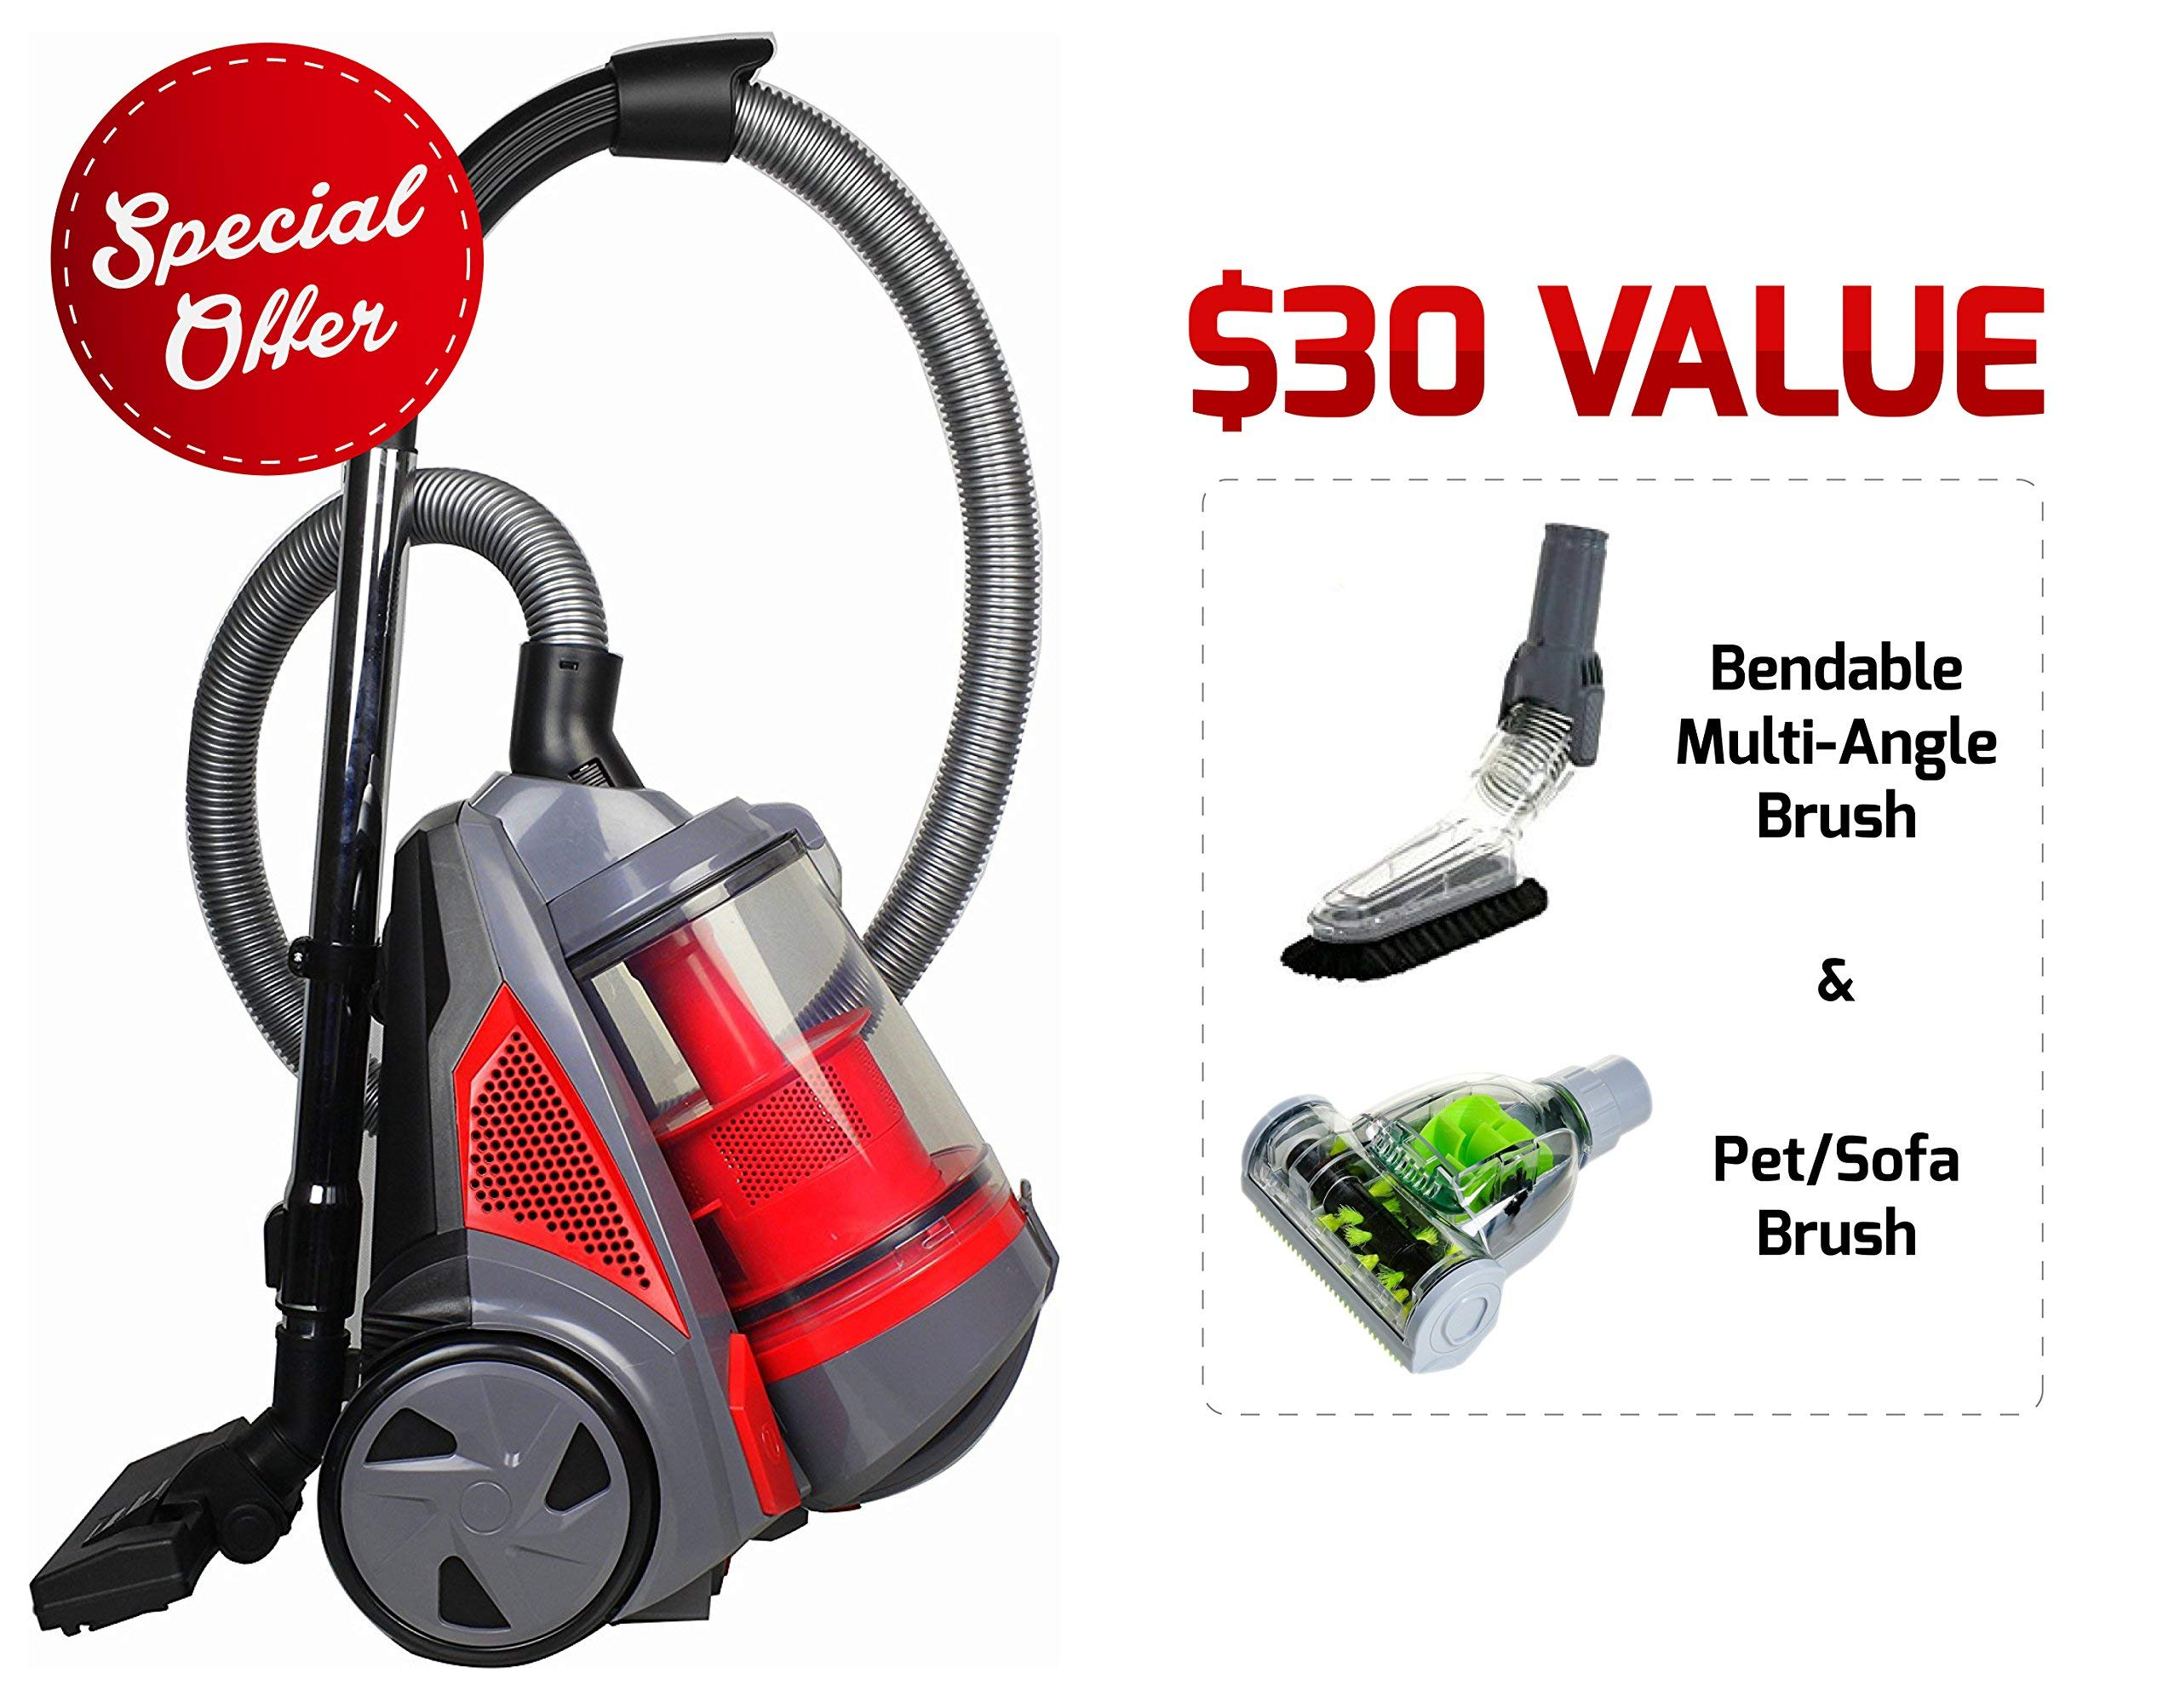 Ovente ST2620R Bagless Canister Cyclonic Vacuum - HEPA Filter - Includes Pet/Sofa, Bendable Multi-Angle, Crevice Nozzle/Bristle Brush, Retractable Cord - Featherlite - ST2620 Series, Red (Renewed)